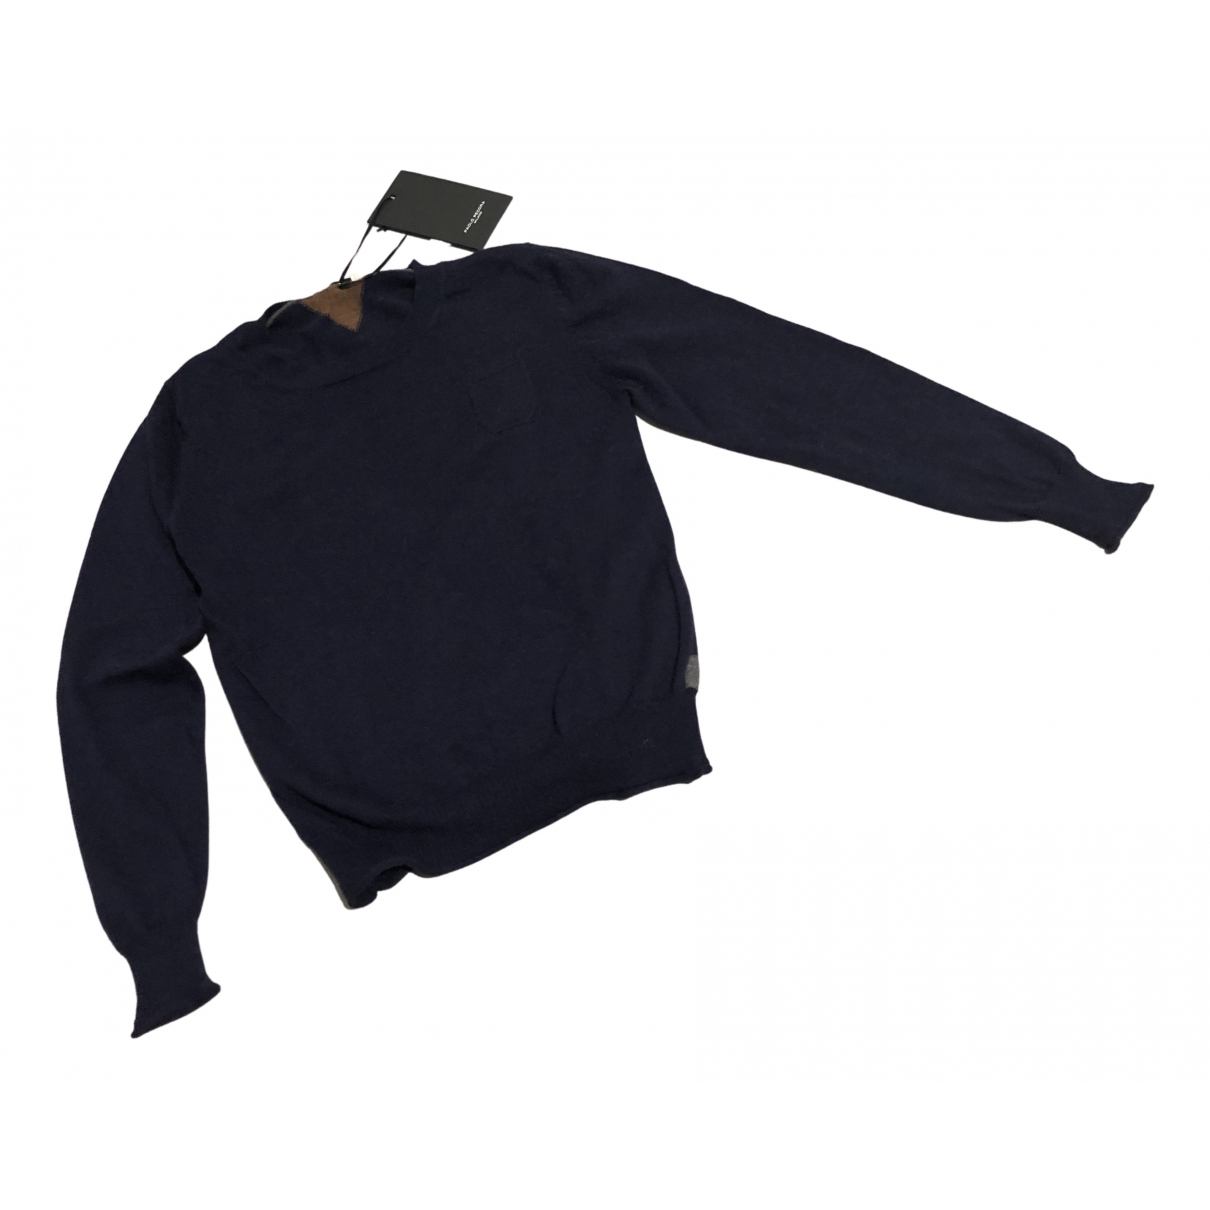 Non Signé / Unsigned N Blue Cashmere Knitwear for Kids 8 years - up to 128cm FR